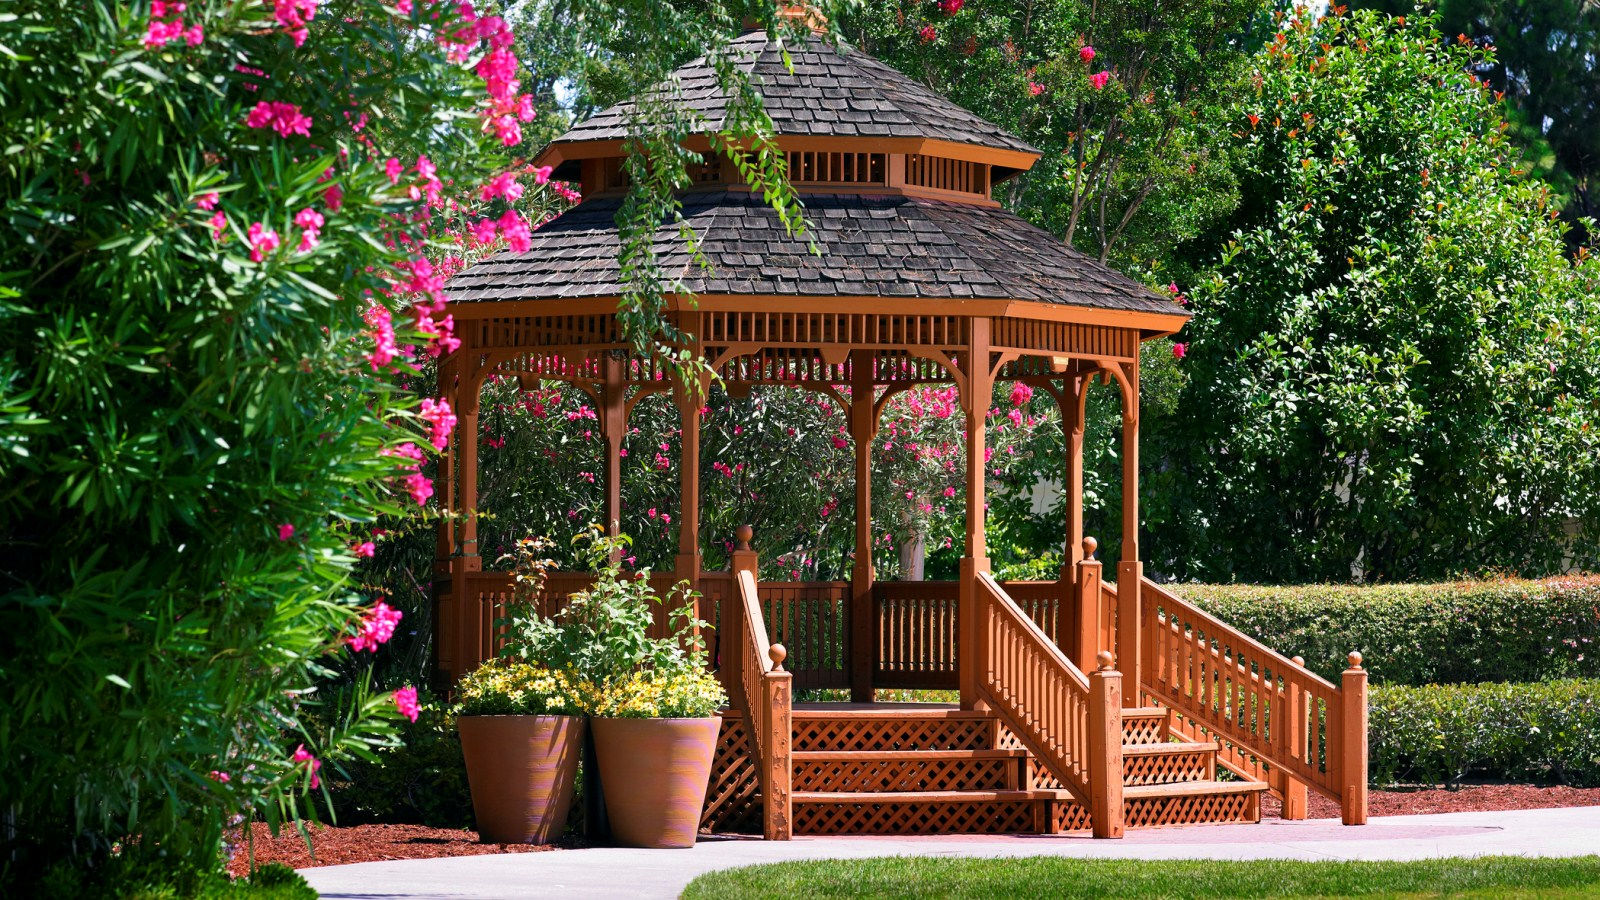 Silicon Valley Meetings - Garden Gazebo